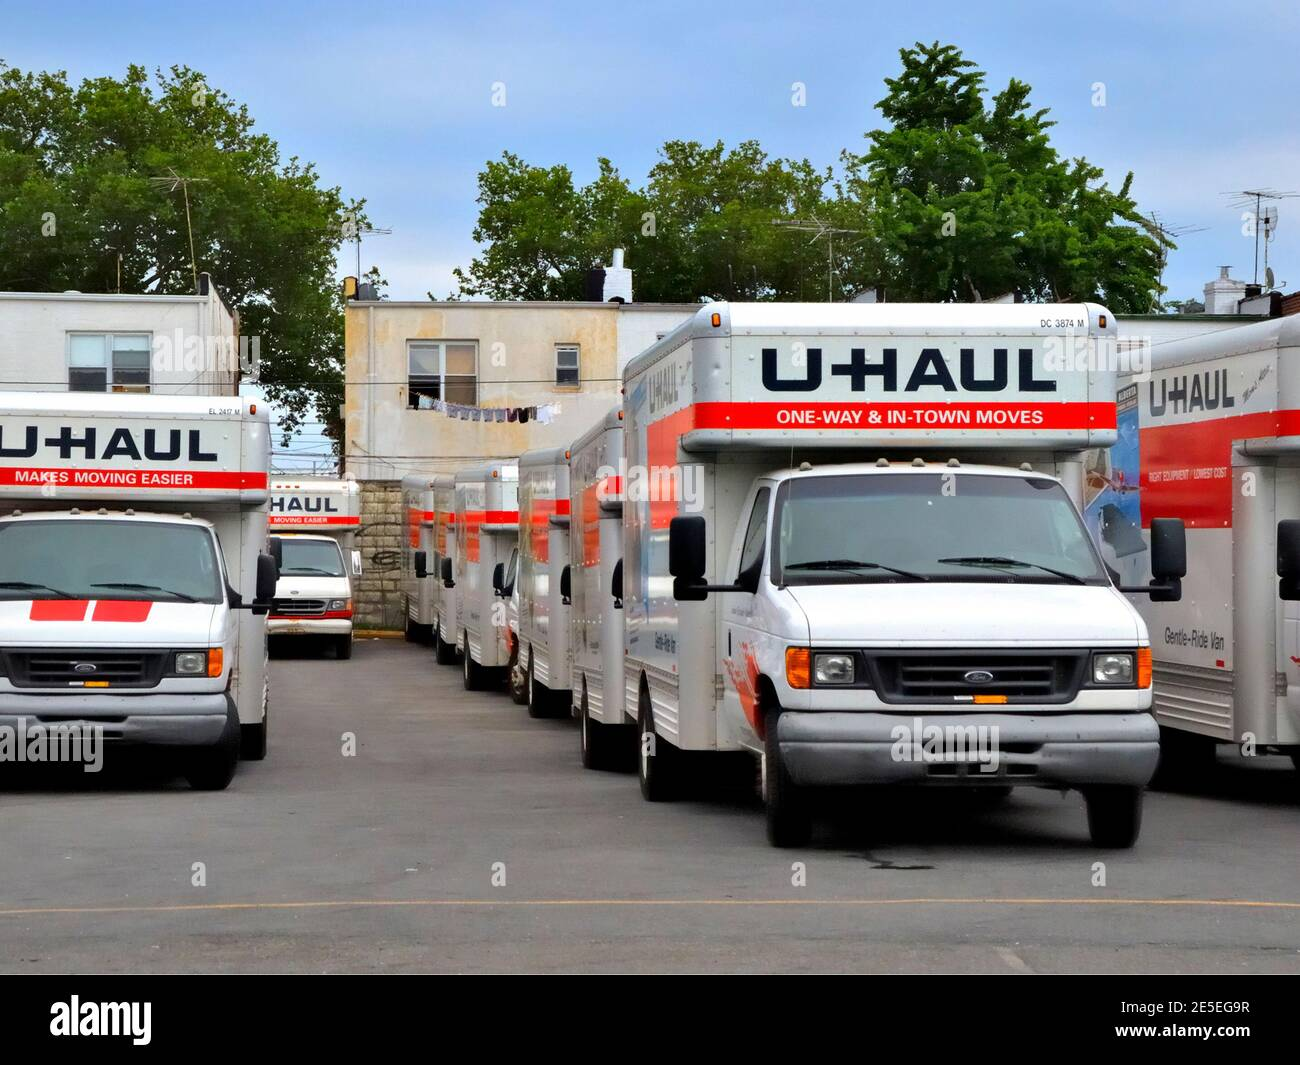 Rows of U-Haul trucks removal vans lined up in a Brooklyn New York depot parking lot moving house do-it-yourself DIY concept Stock Photo